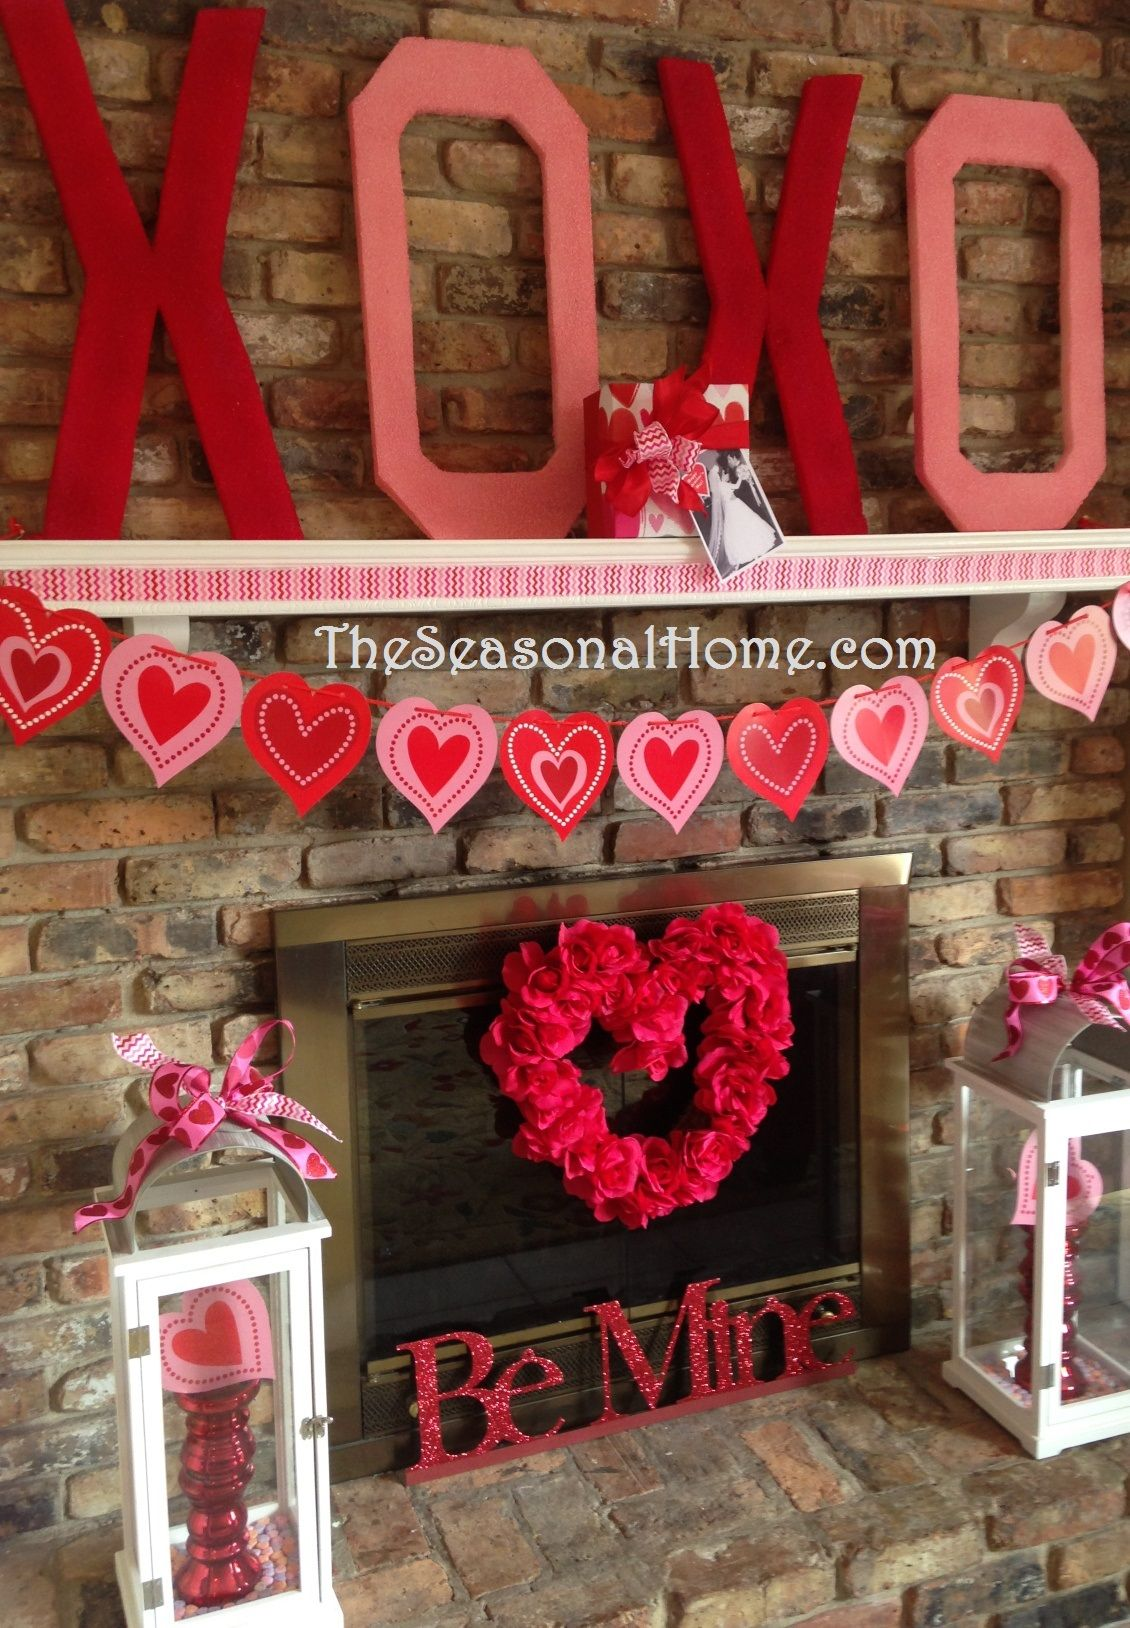 Valentine Kisses & Hugs (D.I.Y. Decor & Gift Idea!)  Diy